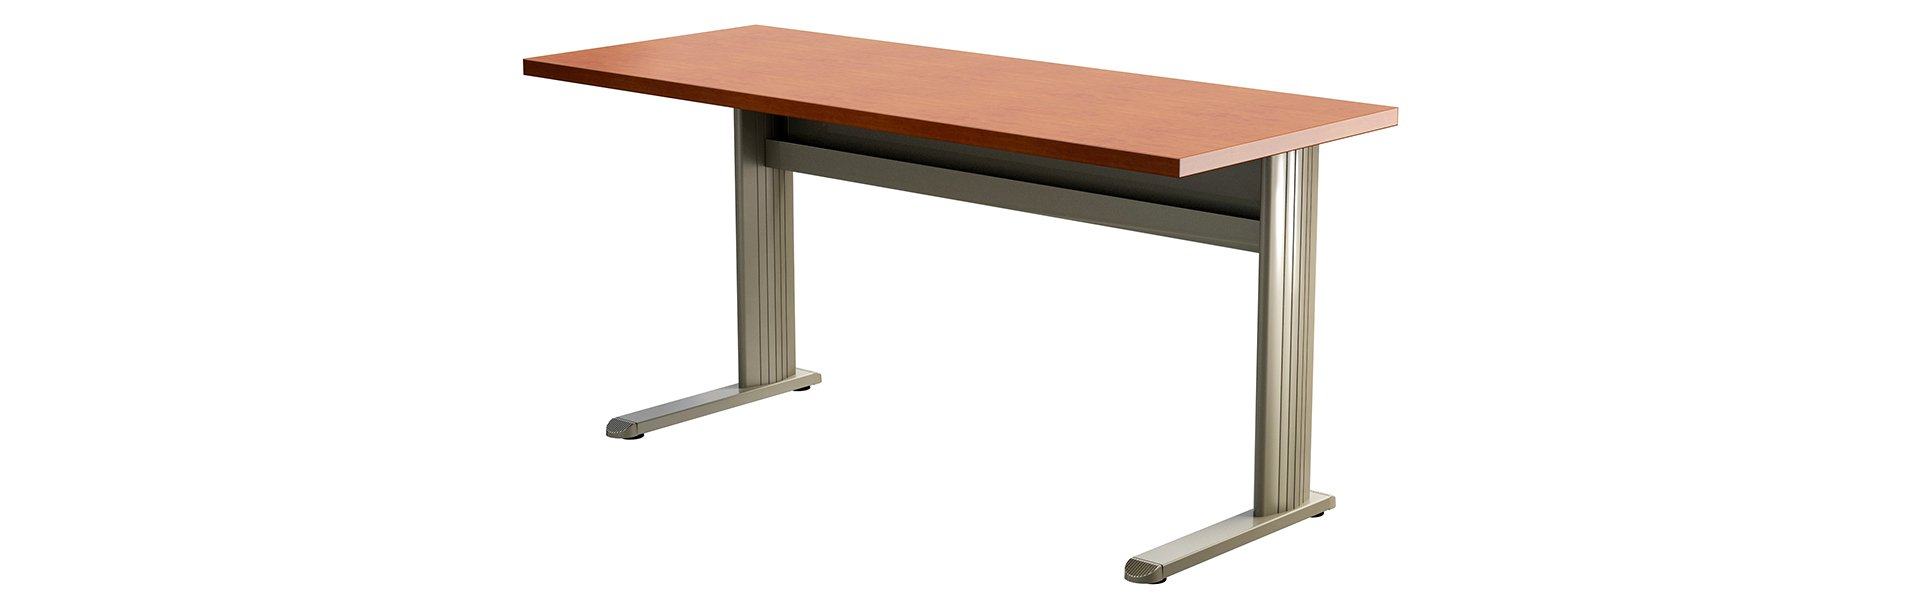 CFC Educational 516-M Desk with Modesty